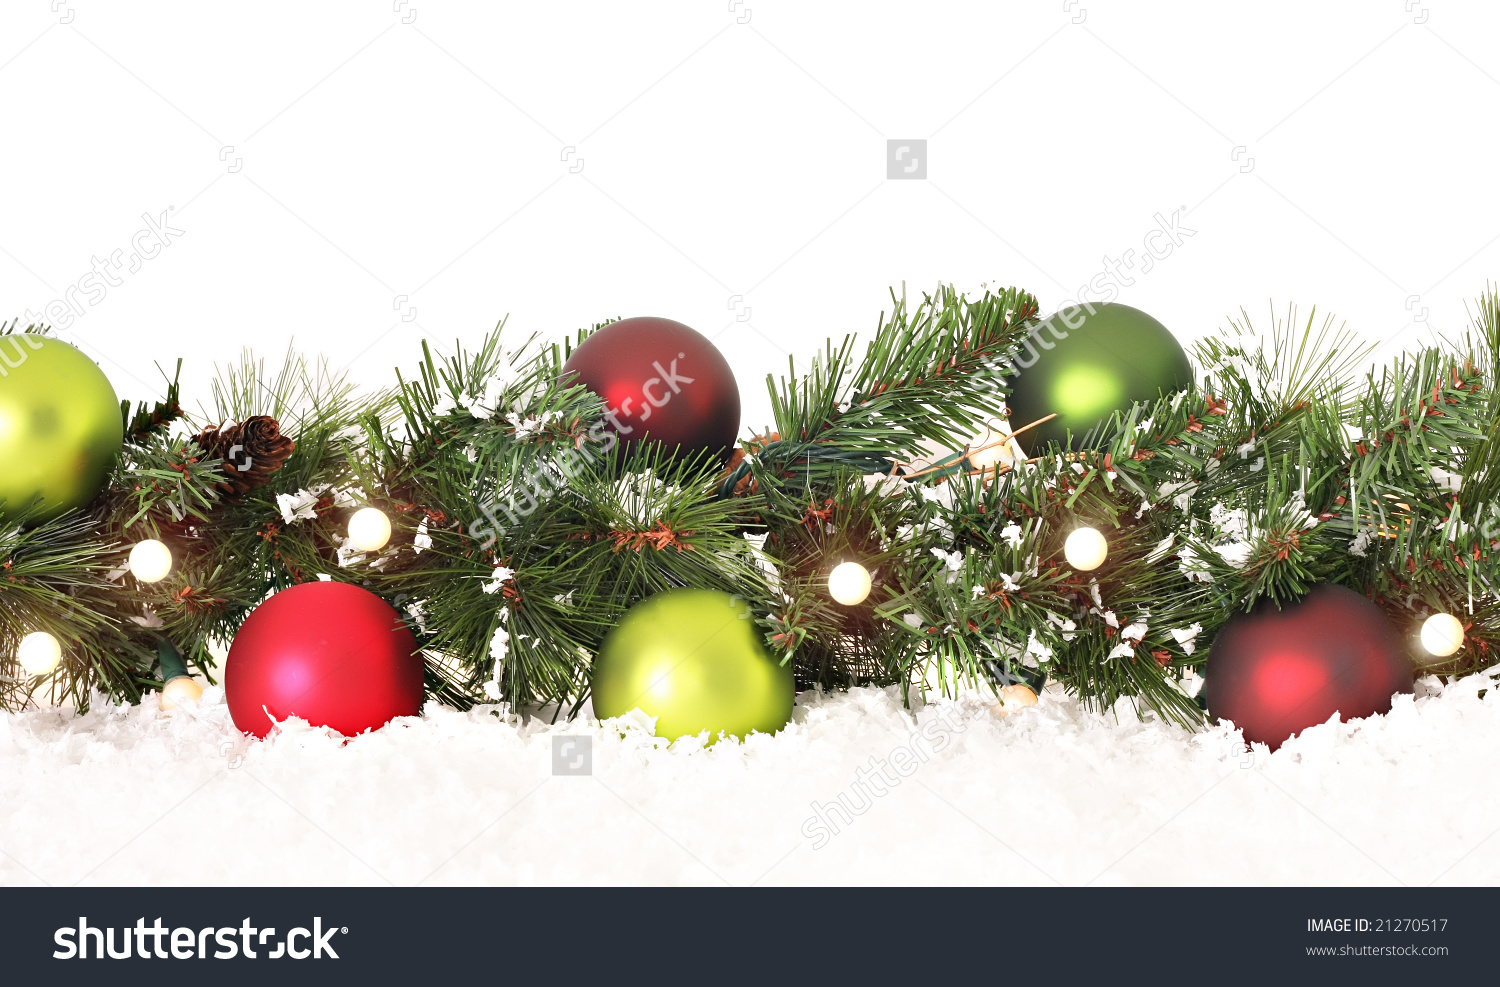 Christmas Greenry Ornament Border Clipart.